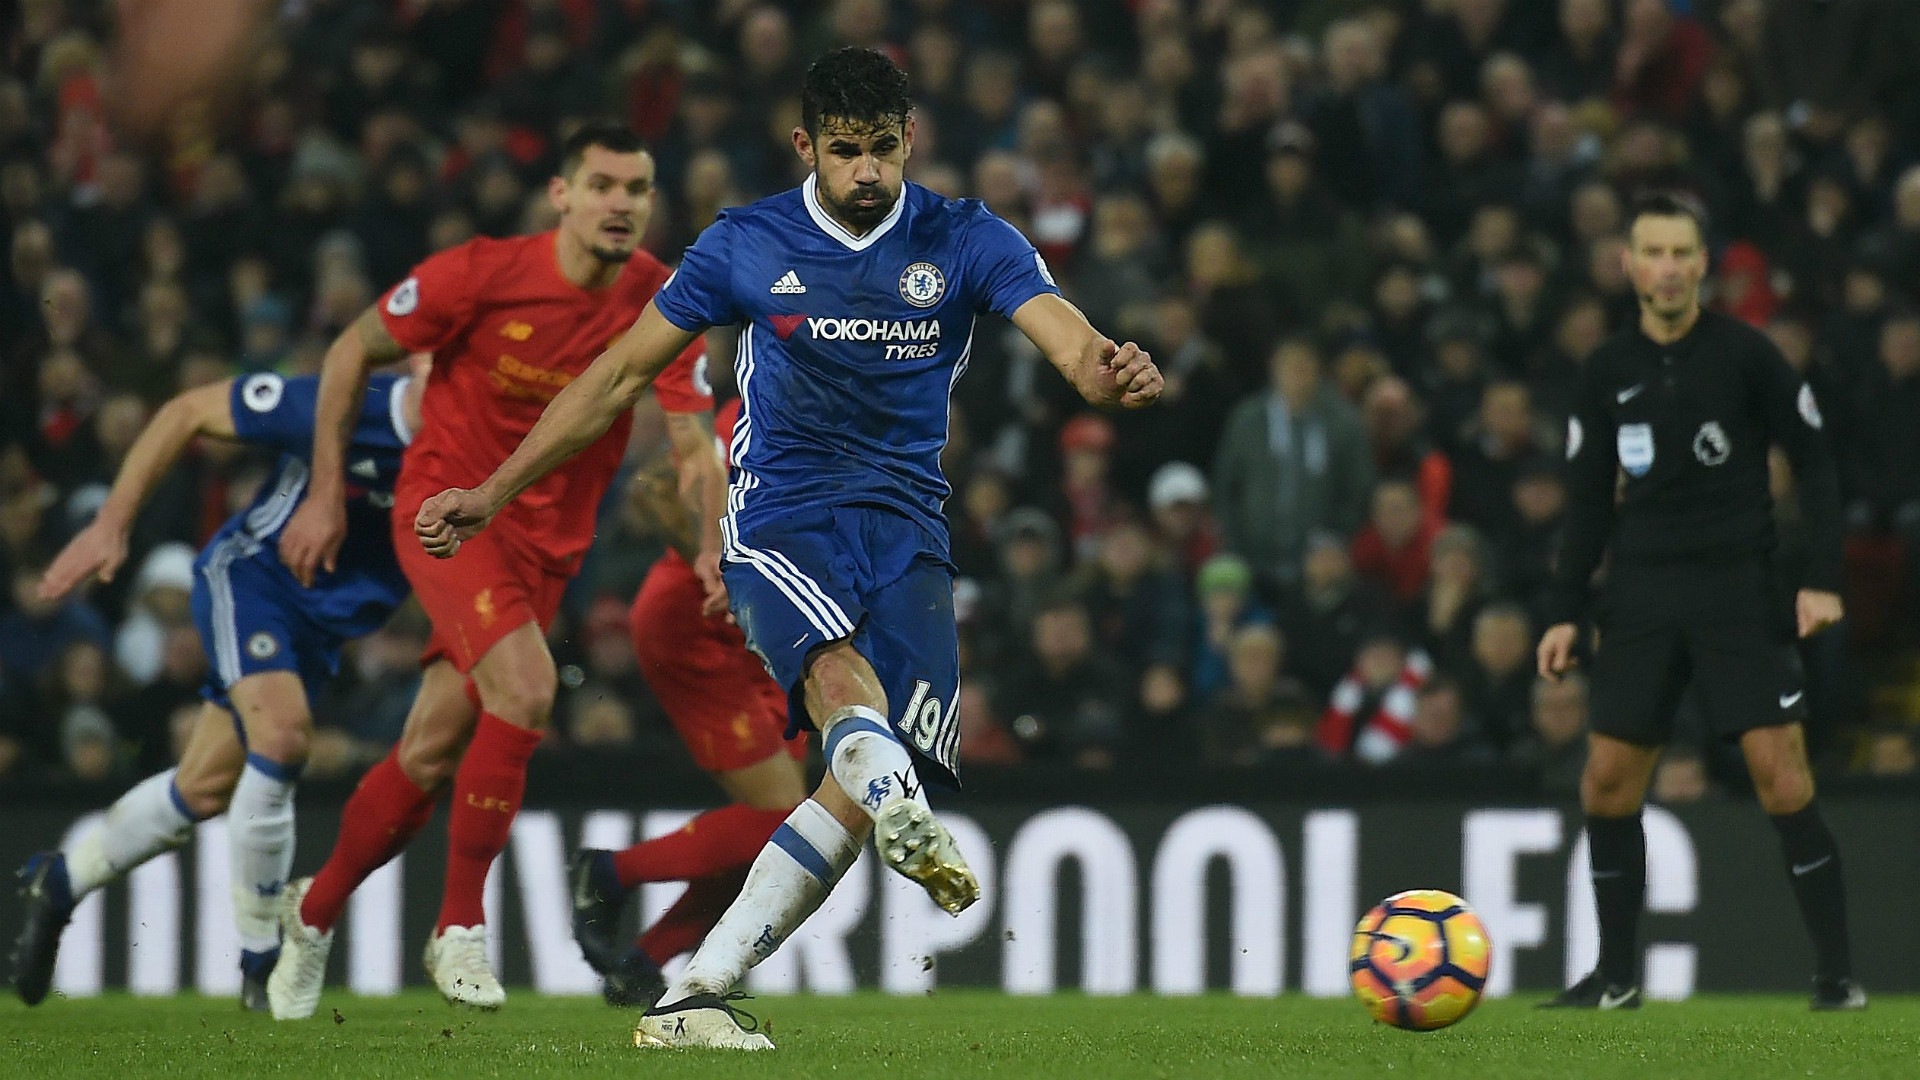 HD Diego Costa penalty saved